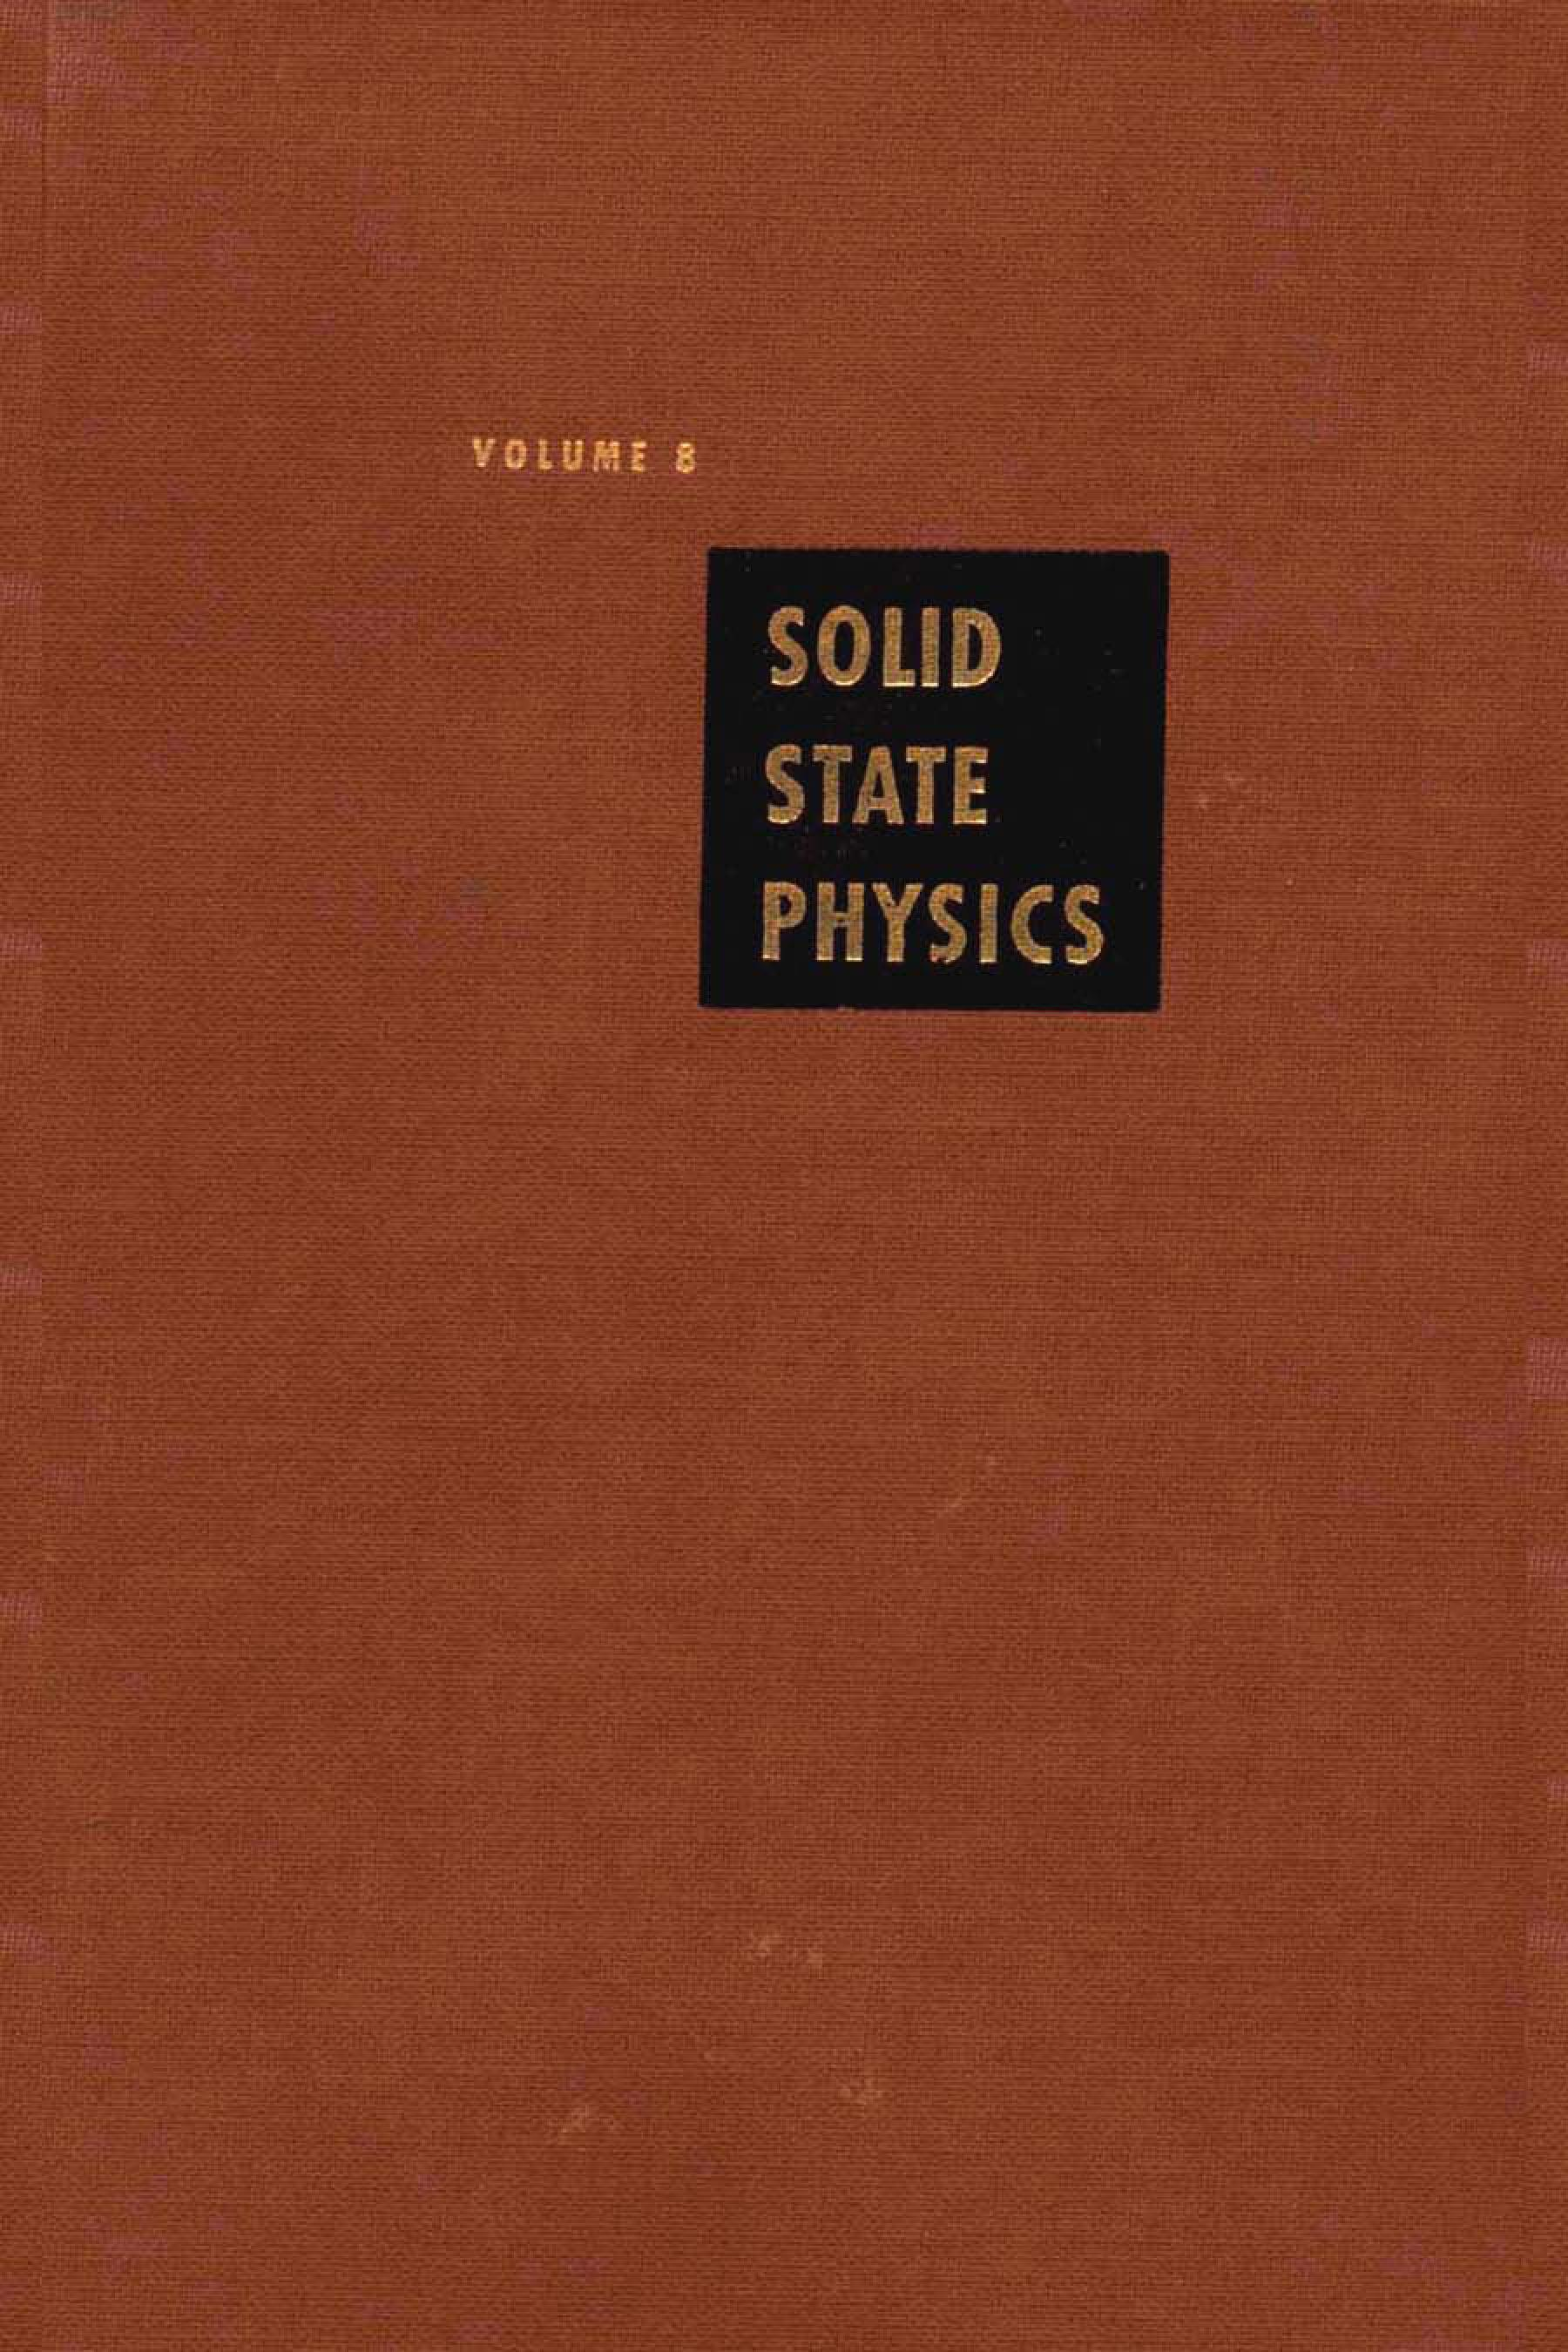 Solid State Physics V8 EB9780080864723